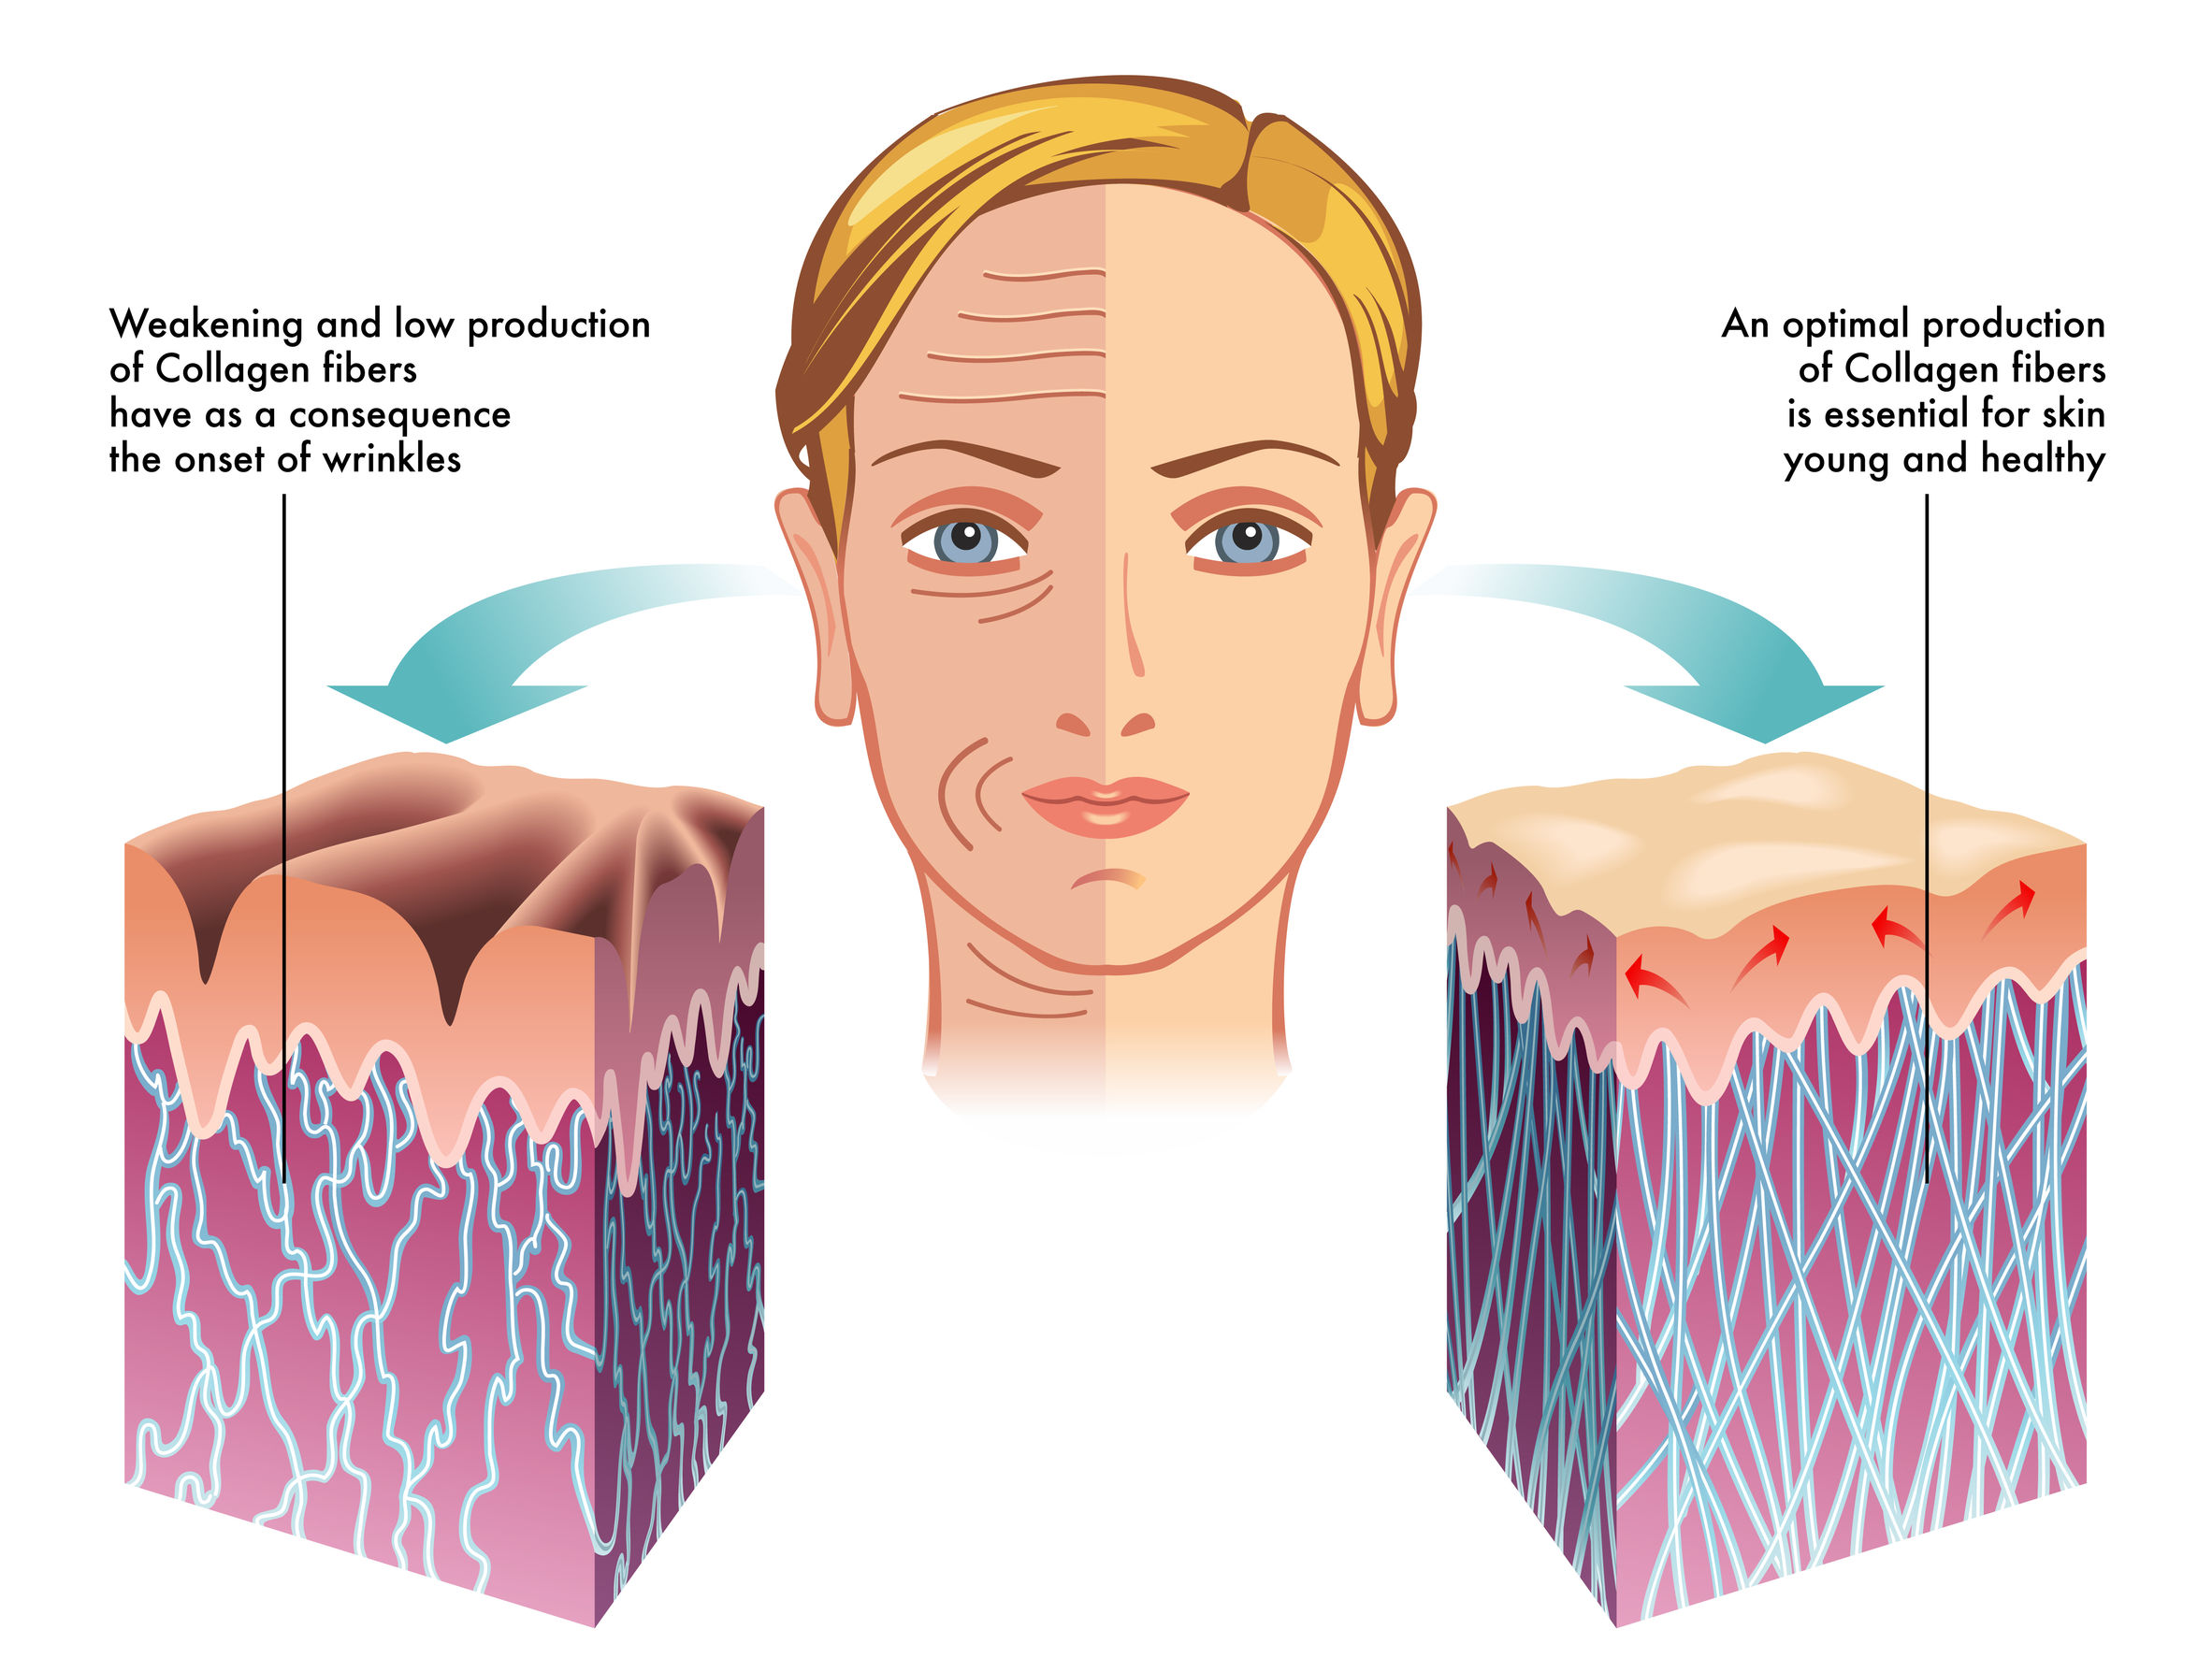 The image on the left is what happens to skin as we age. The image on the right is what we are trying to achieve with these skin care services.